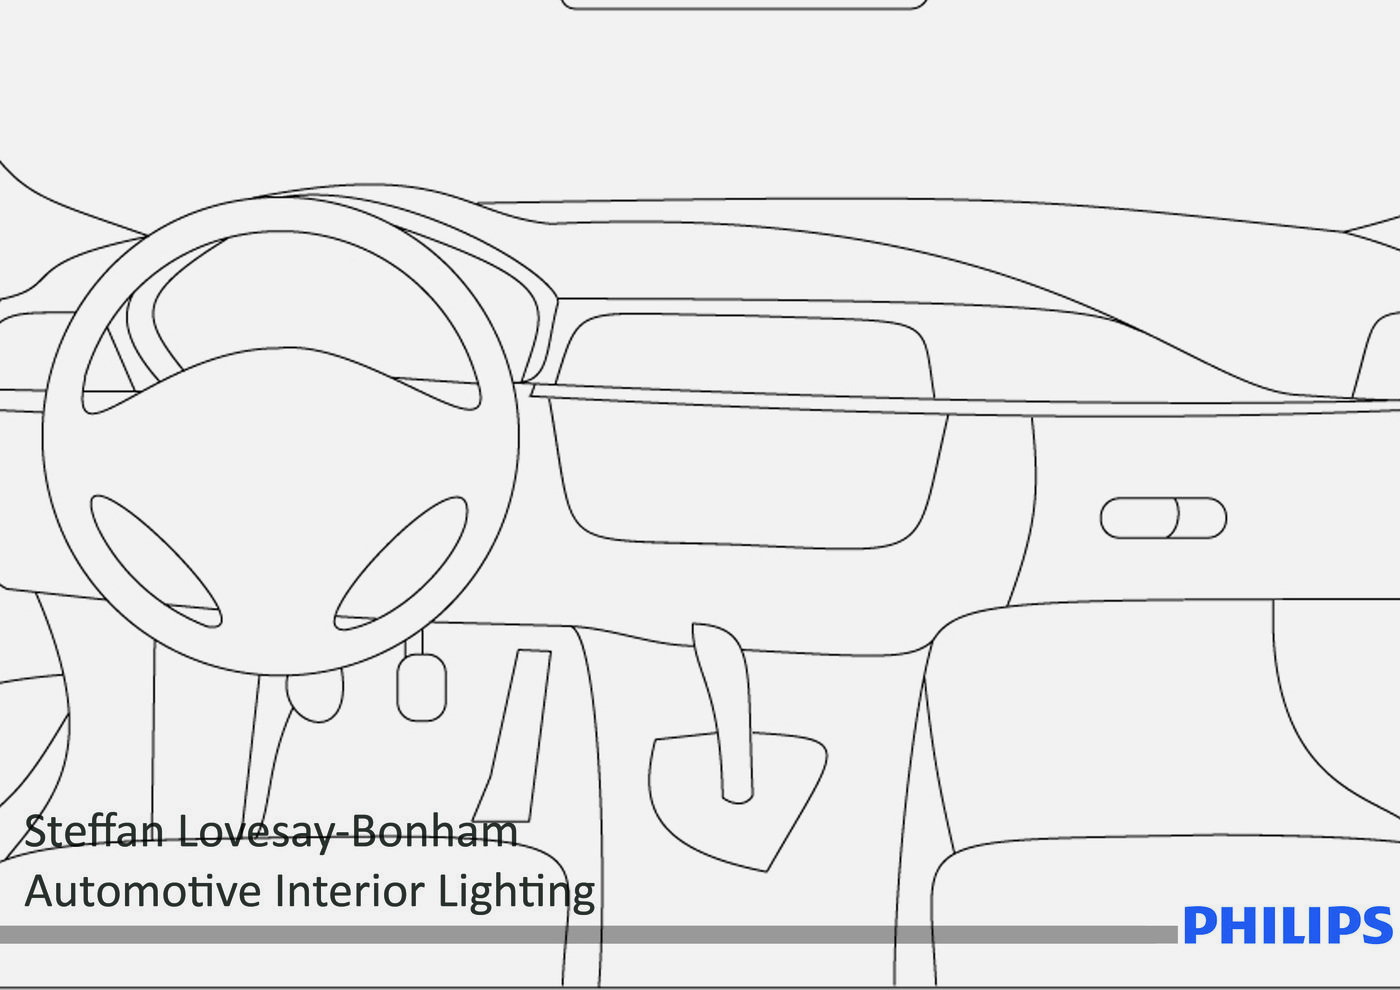 Philips Automotive Interior Lighting Assignment By Steffan